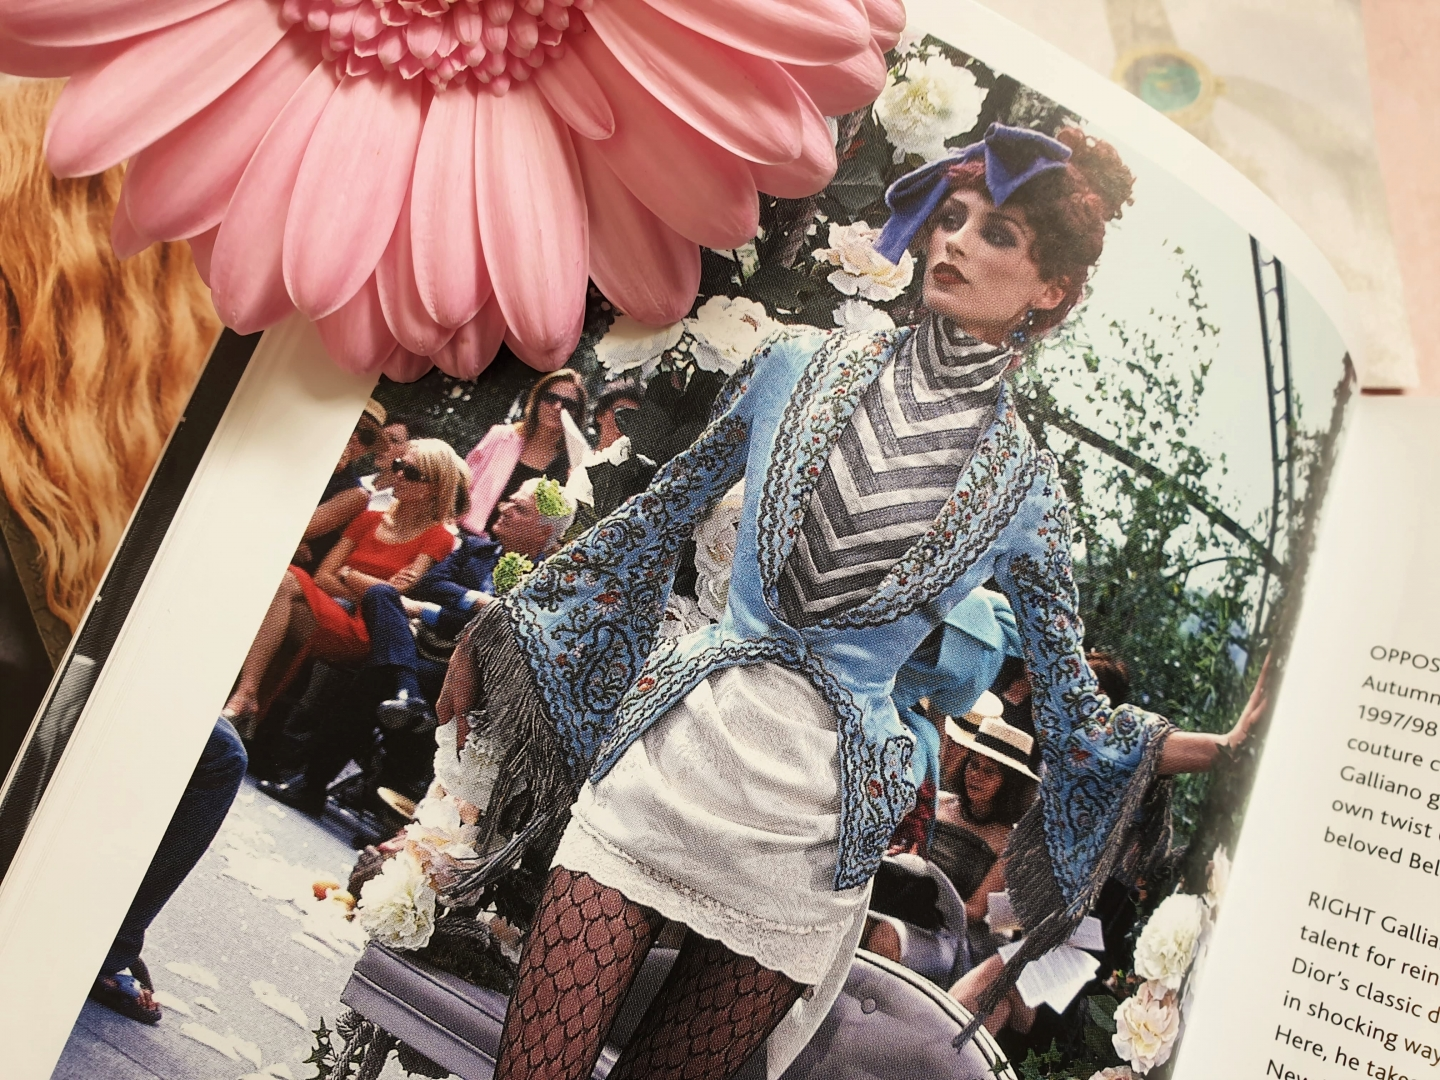 A 1990's John Galliano design for Dior, from The Little Book of Dior